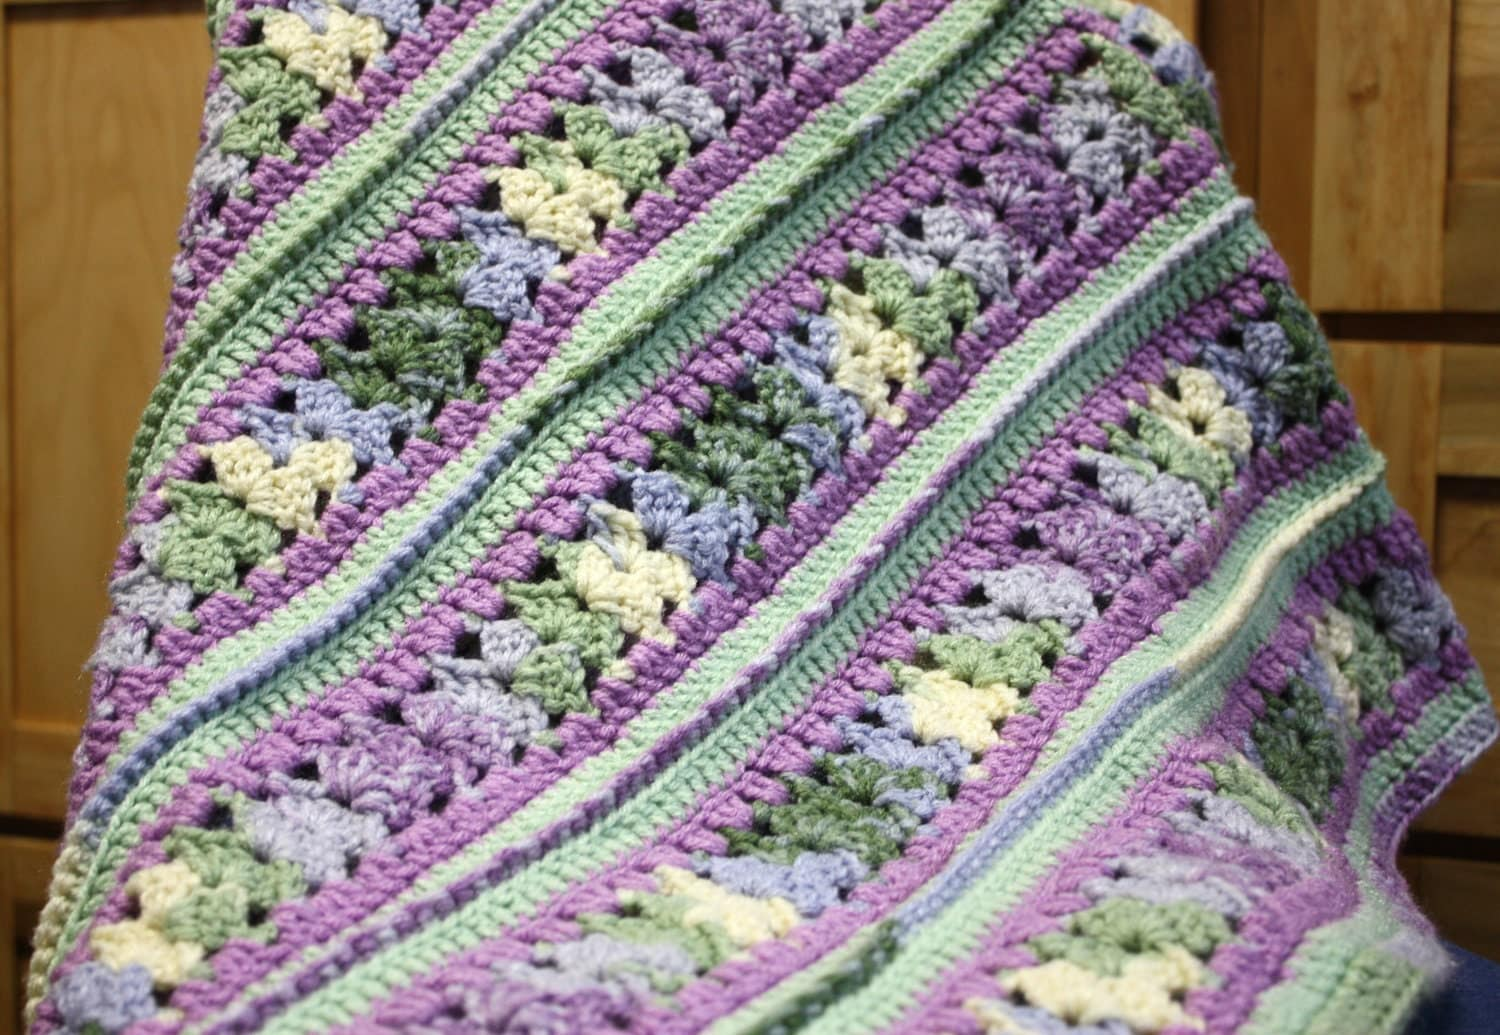 Crochet Afghan Patterns Mile A Minute : mile a minute afghan